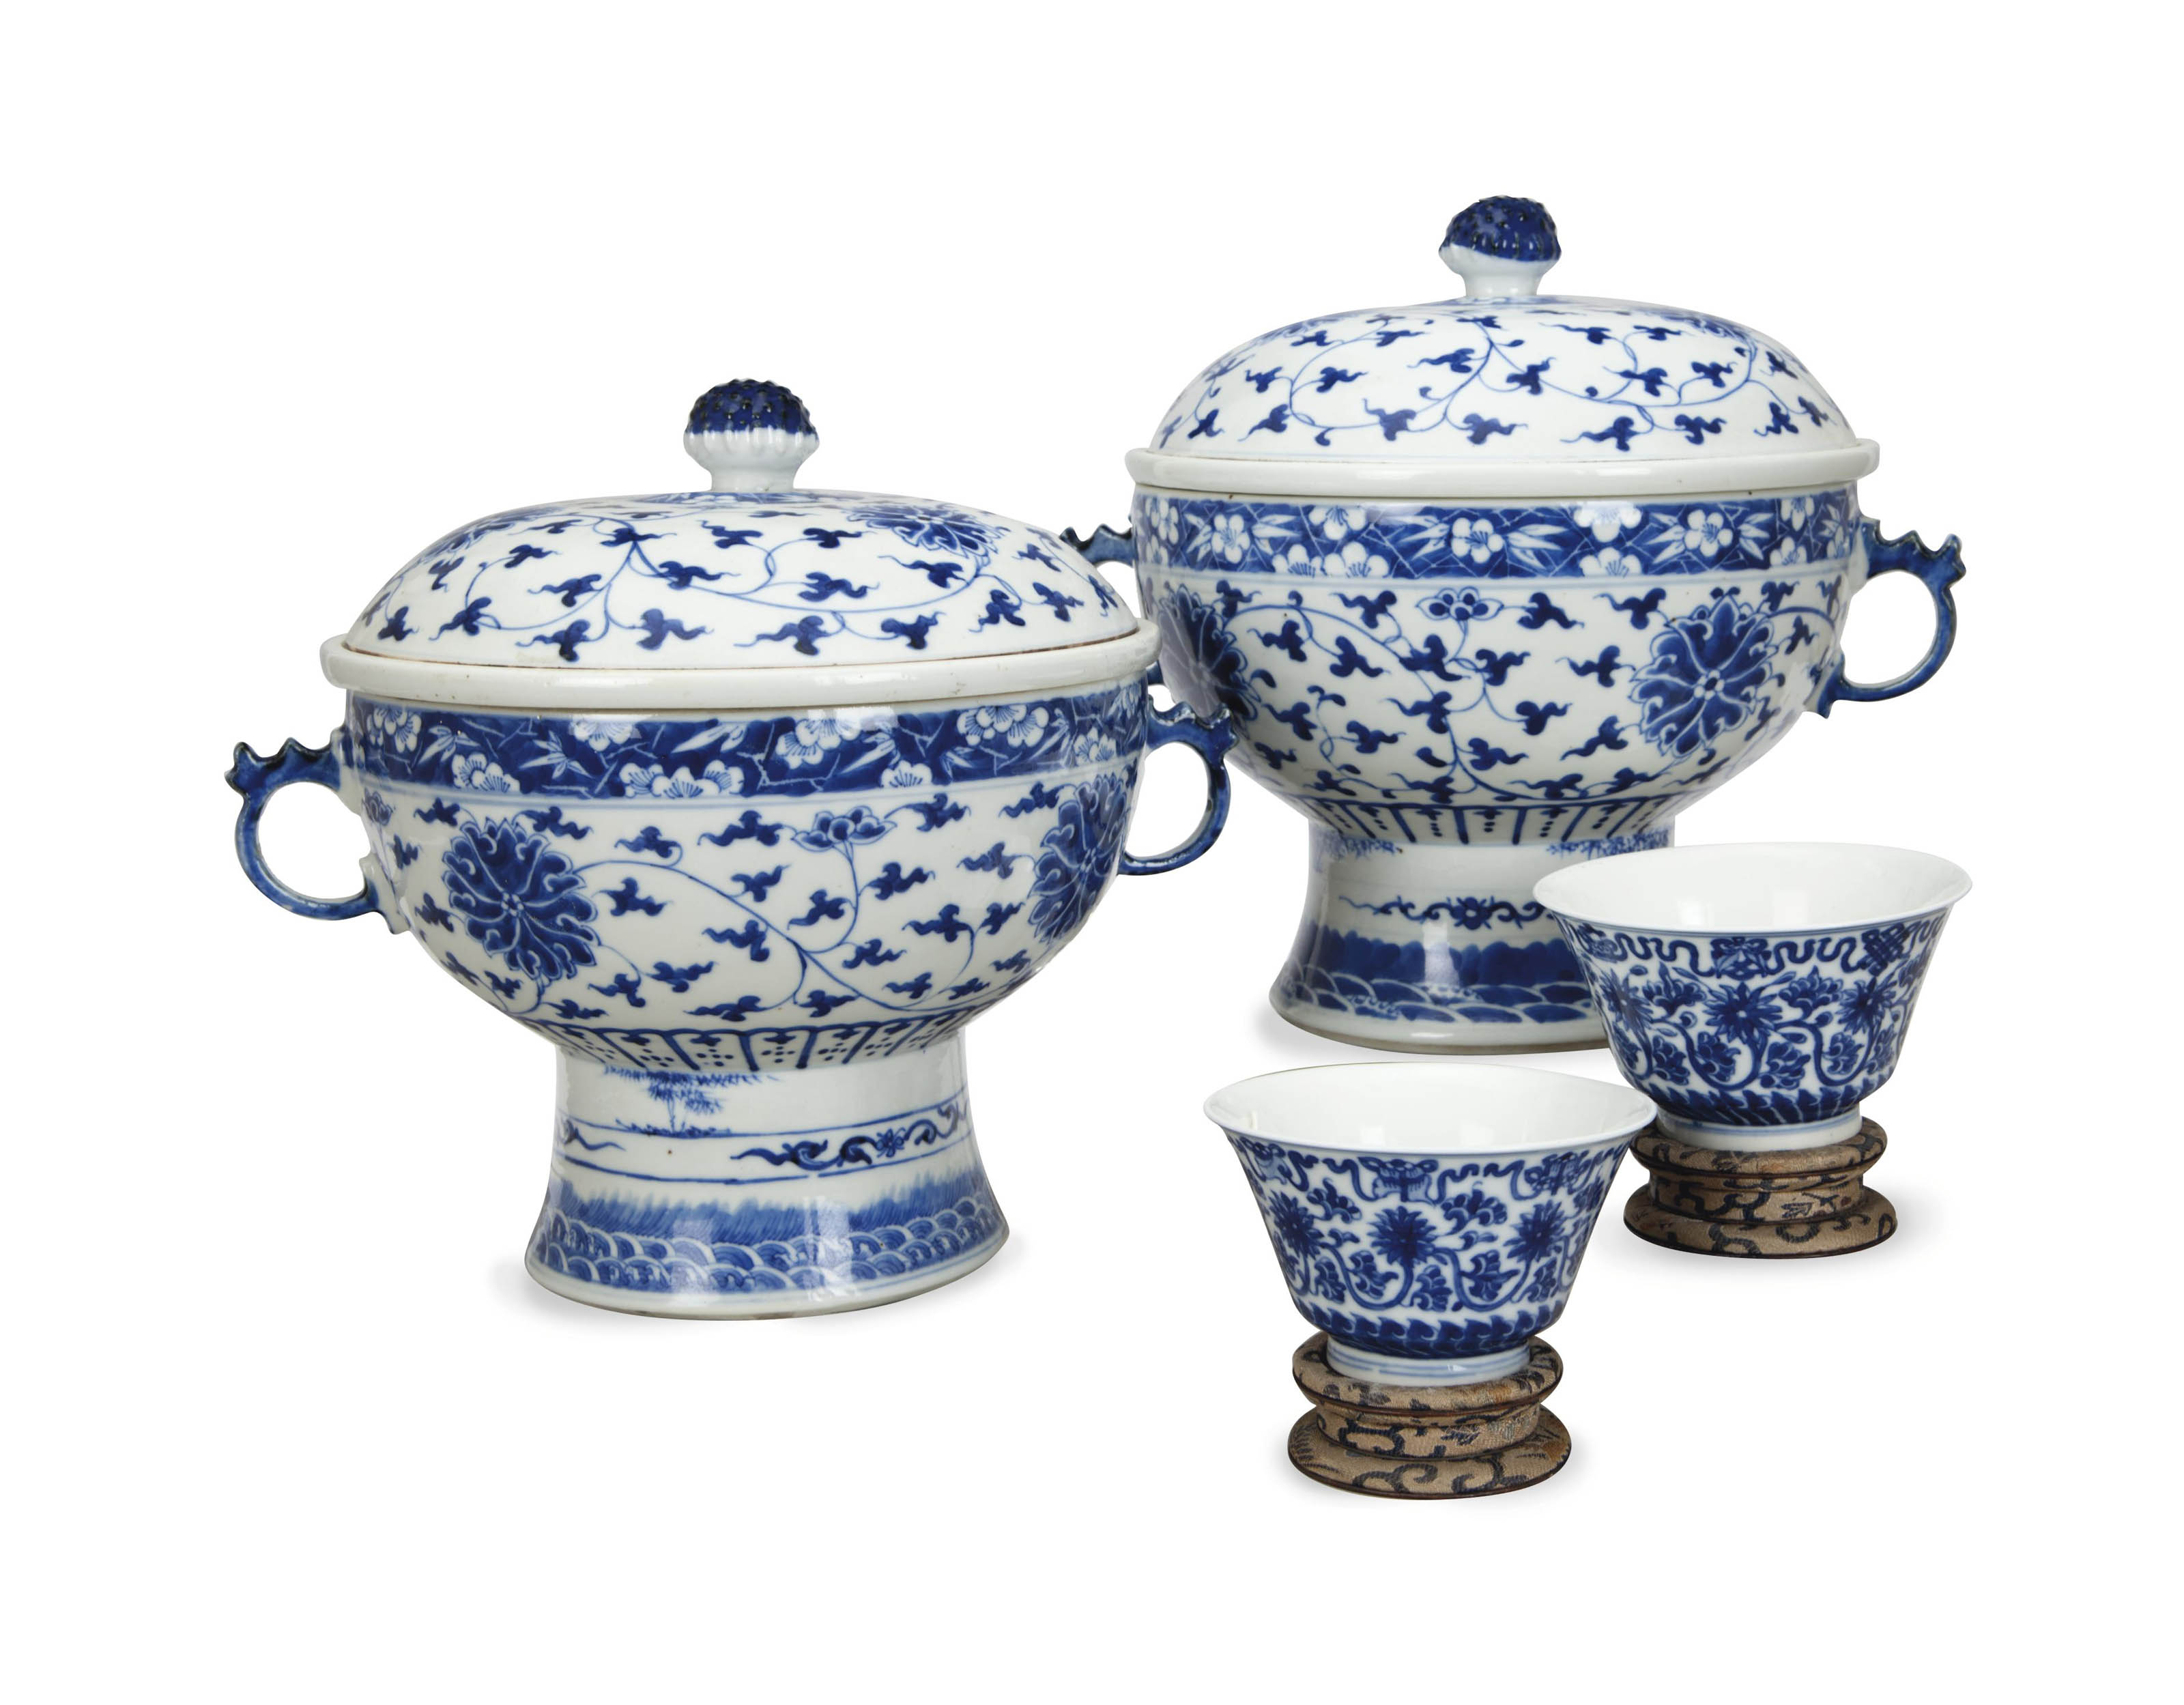 A PAIR OF SMALL CHINESE BLUE AND WHITE BOWLS AND A PAIR OF LARGE BLUE AND WHITE TWO-HANDLED FOOTED BOWLS AND COVERS,